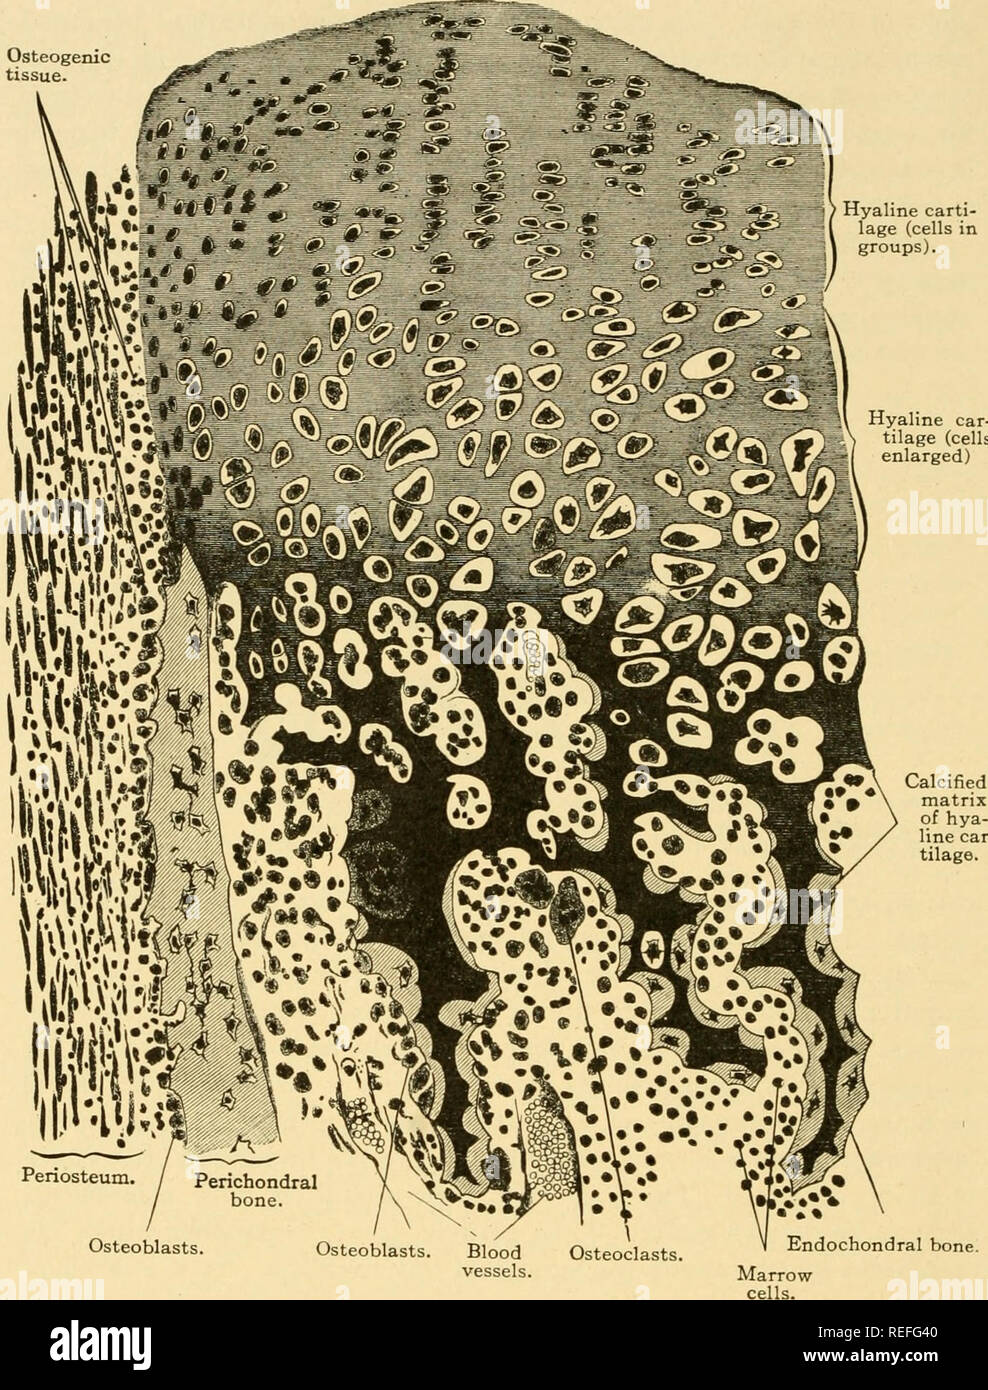 . Comparative anatomy. Anatomy, Comparative. I04 COMPARATIVE ANATOMY Osteogenic tissue. Hyaline carti- lage (cells in groups). Hyaline car- tilage (cells enlarged). Osteoblasts. Endochondral bone. Fig. 77.—Development of cartilage bone (primary bone). Part of a longitudinal section of a phalanx of the first finger of a human embryo of the fourth month. Ossifica- tion within the cartilage produces endochondral bone; the perichondrium deposits bone superficially to the cartilage, perichondral bone, and thereby becomes the periosteum. X220. (From Bremer, Text-book of Histology.). Please note that Stock Photo